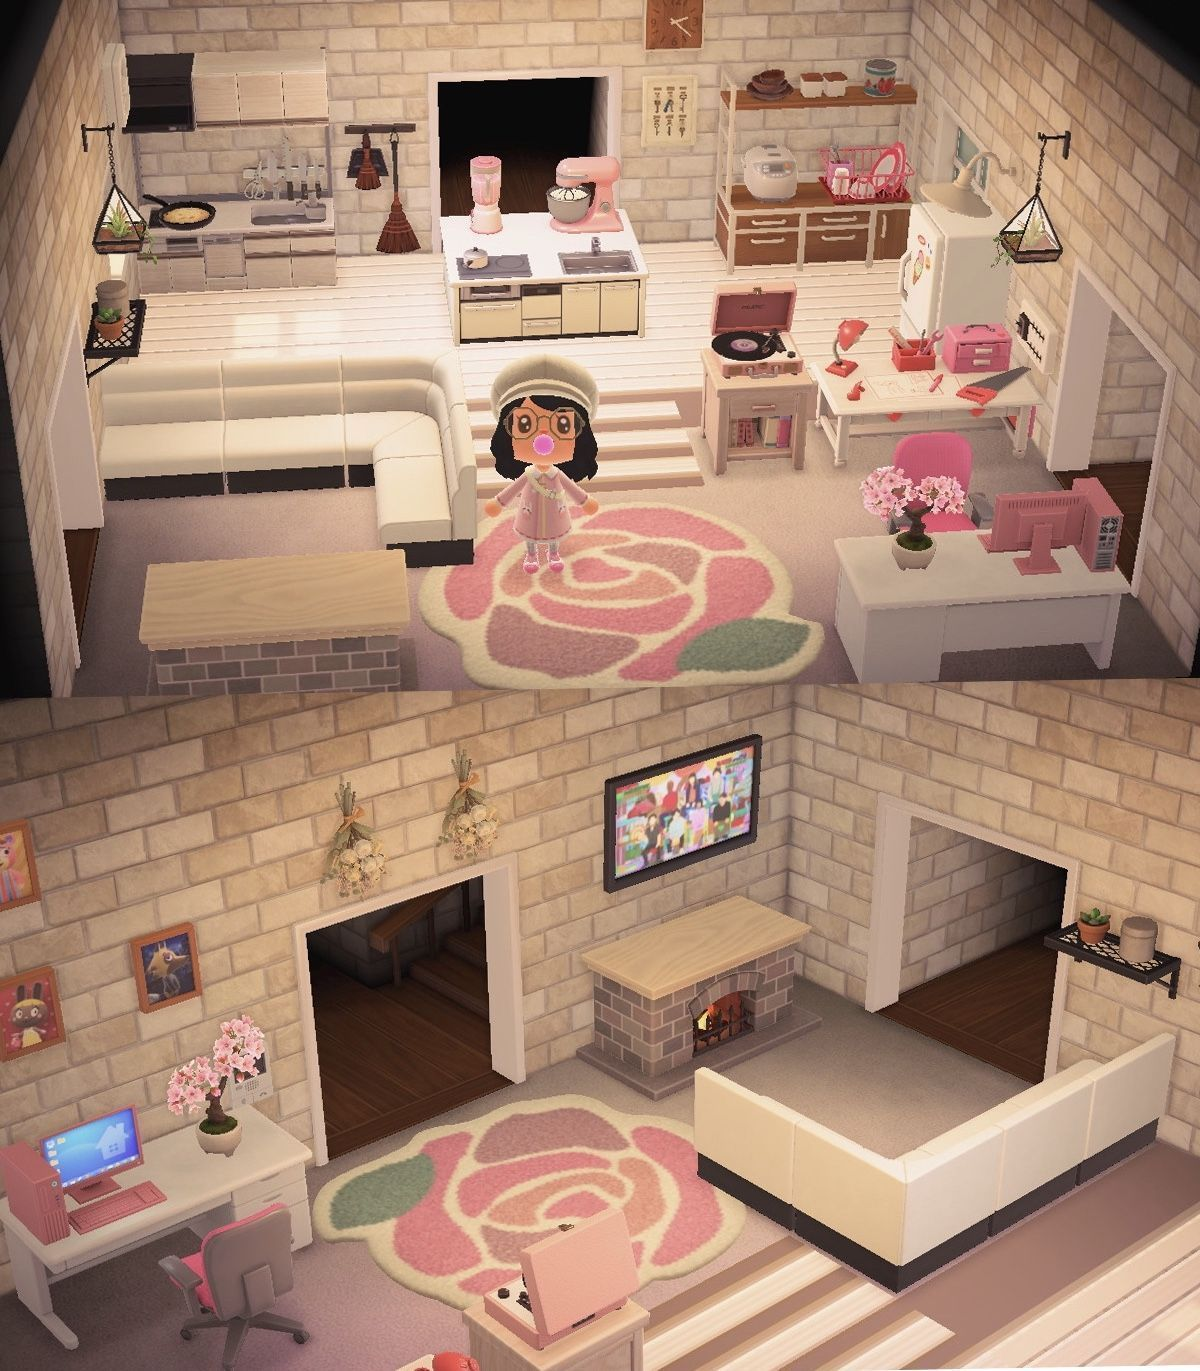 Loading Animal Crossing 3ds Animal Crossing Animal Crossing Wild World Room ideas for acnh